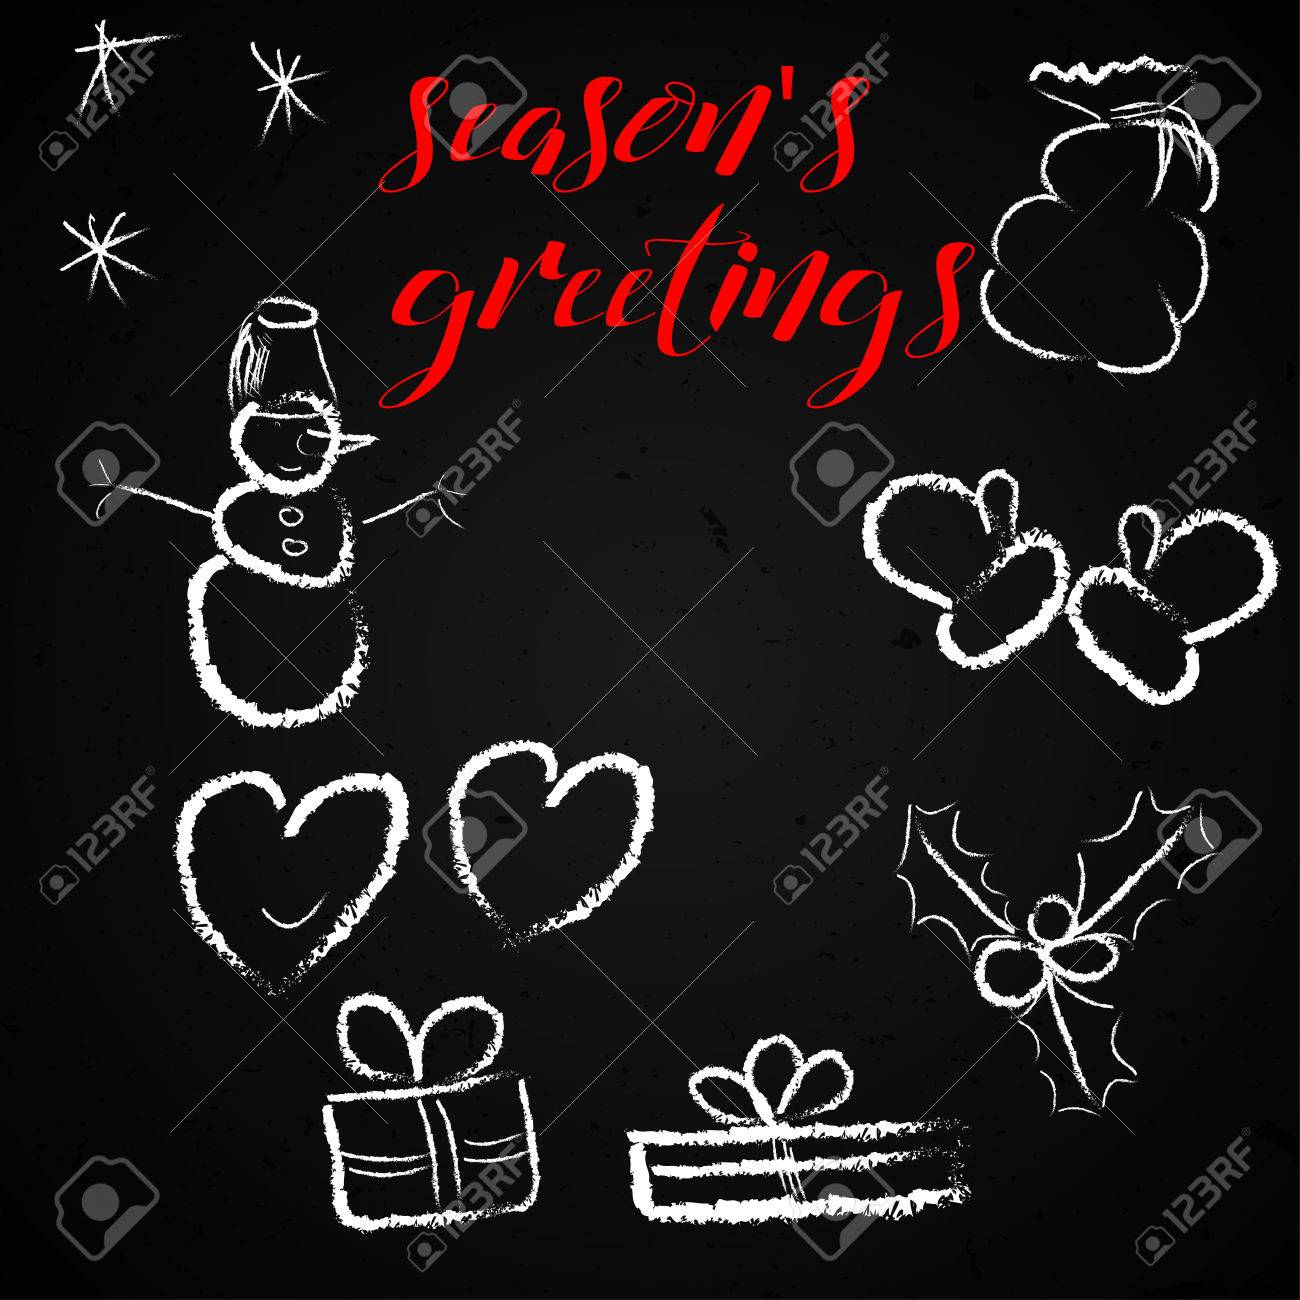 Seasons Greetings Red Text With Hand Drawn Doodles Mittens Snowman